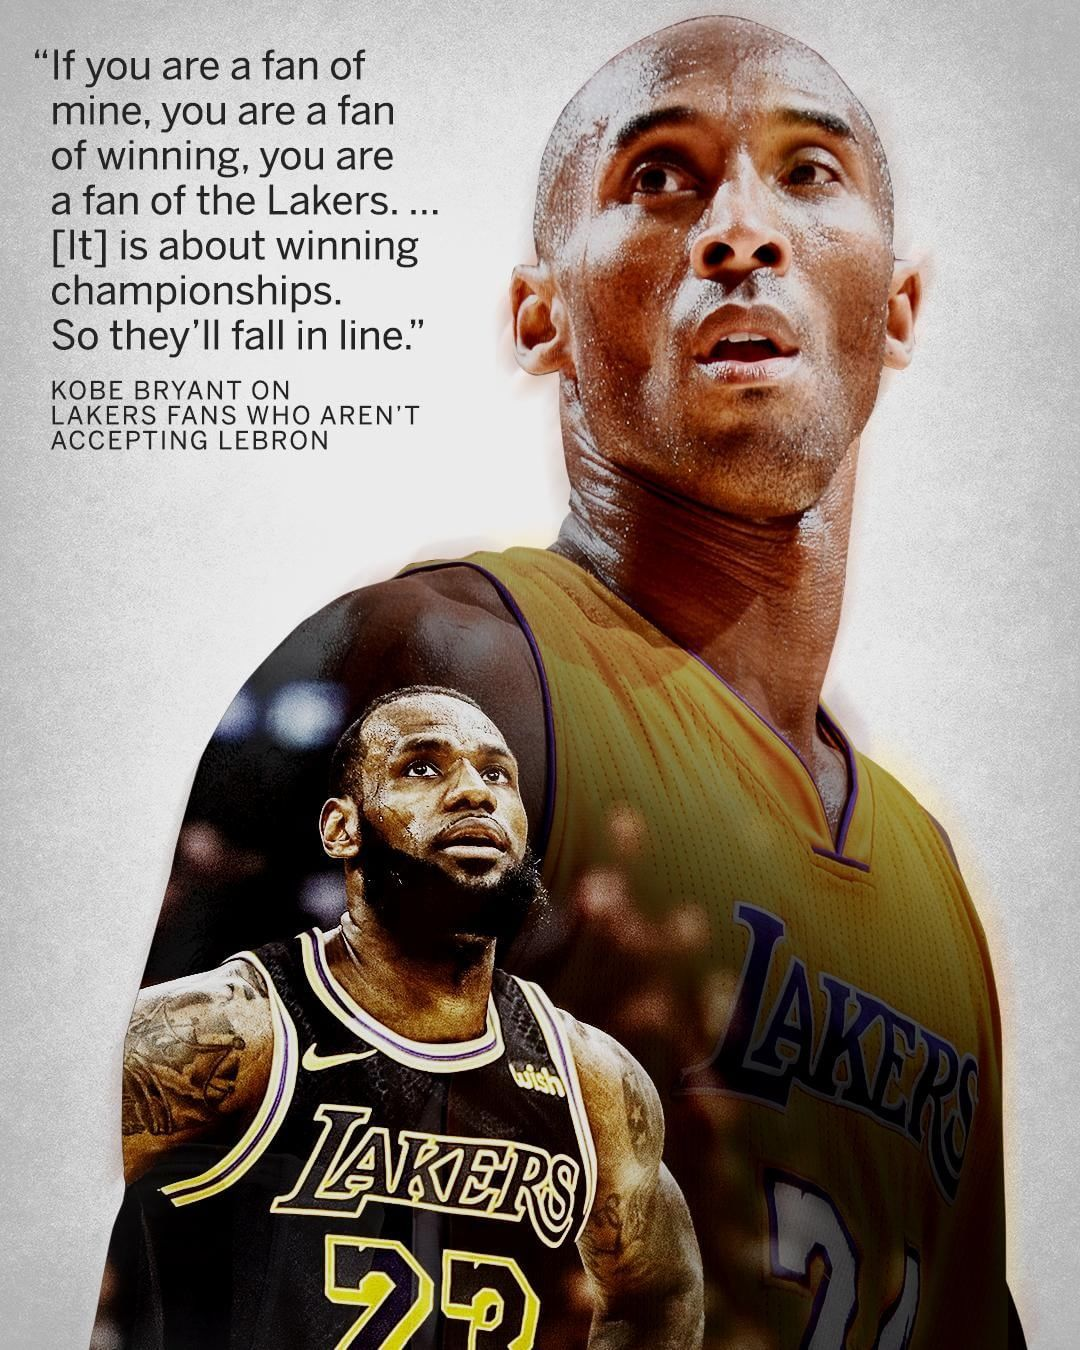 922f7e84eb47 Kobe says his die-hard fans will warm up to LeBron.